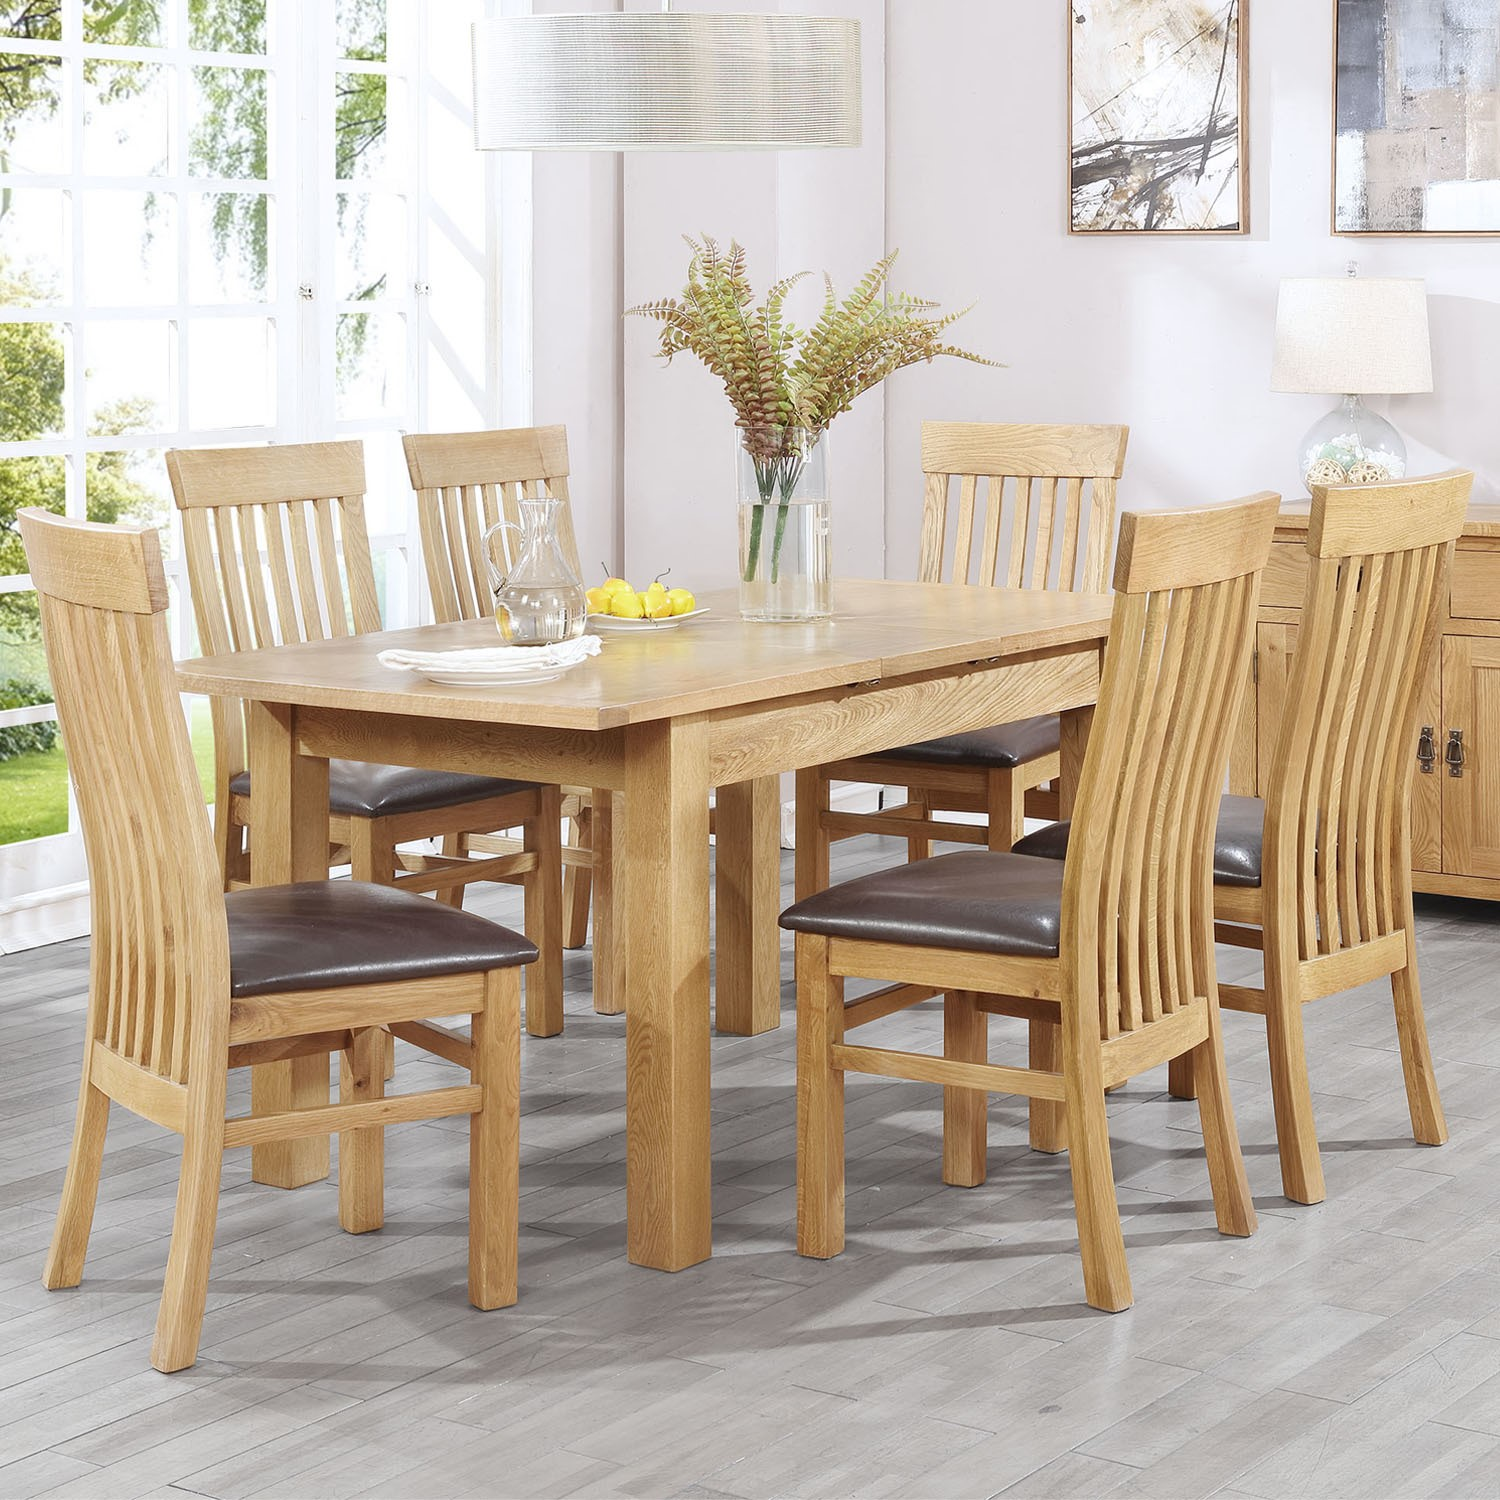 Extendable Solid Oak Dining Table and 6 Chairs - Rustic Saxon Range